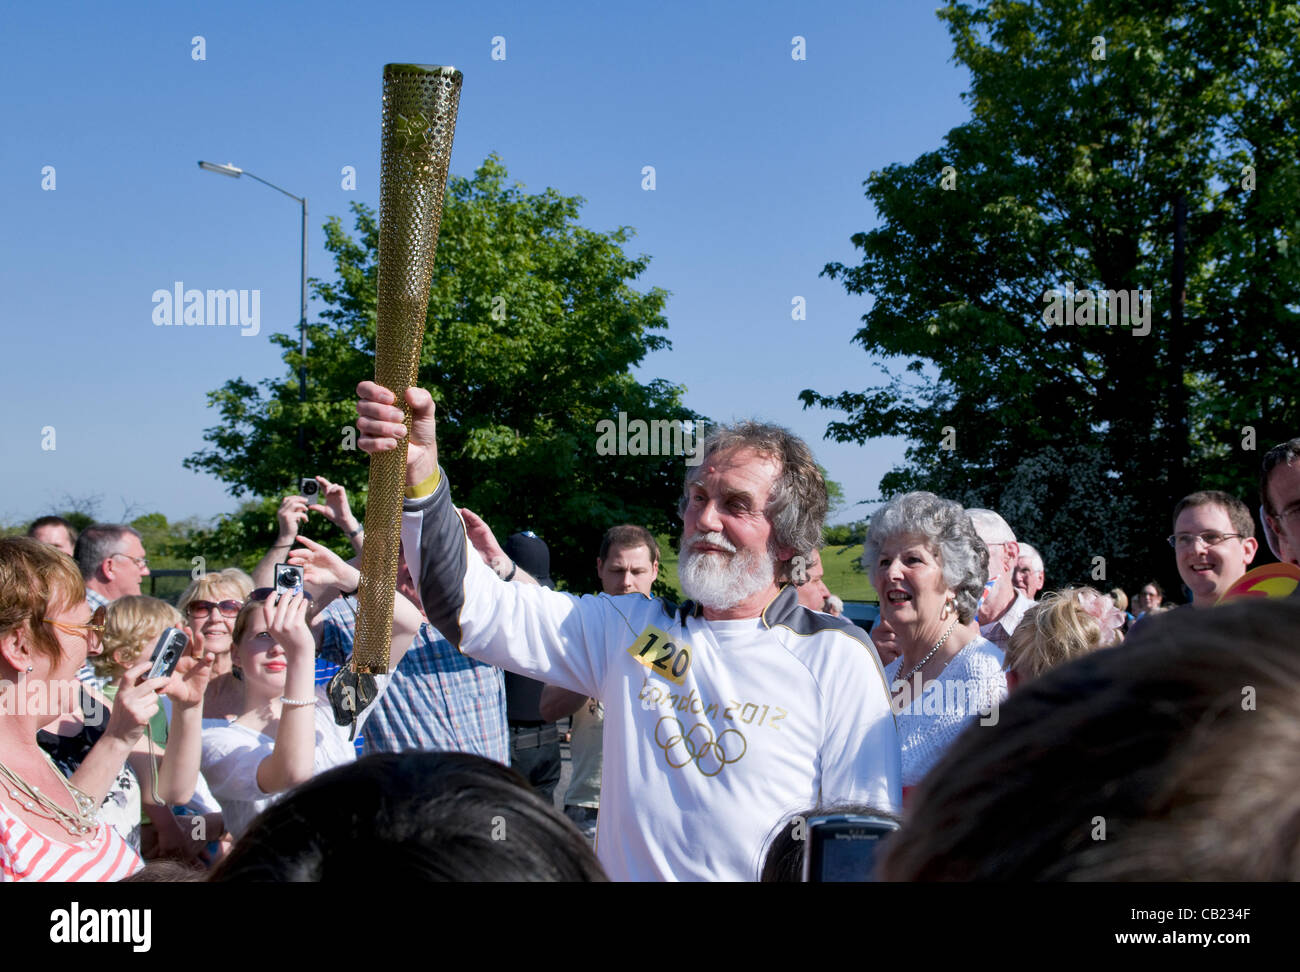 Olympic torch relay team at Longwell Green, Bristol, UK.  22nd May 2012. - Stock Image